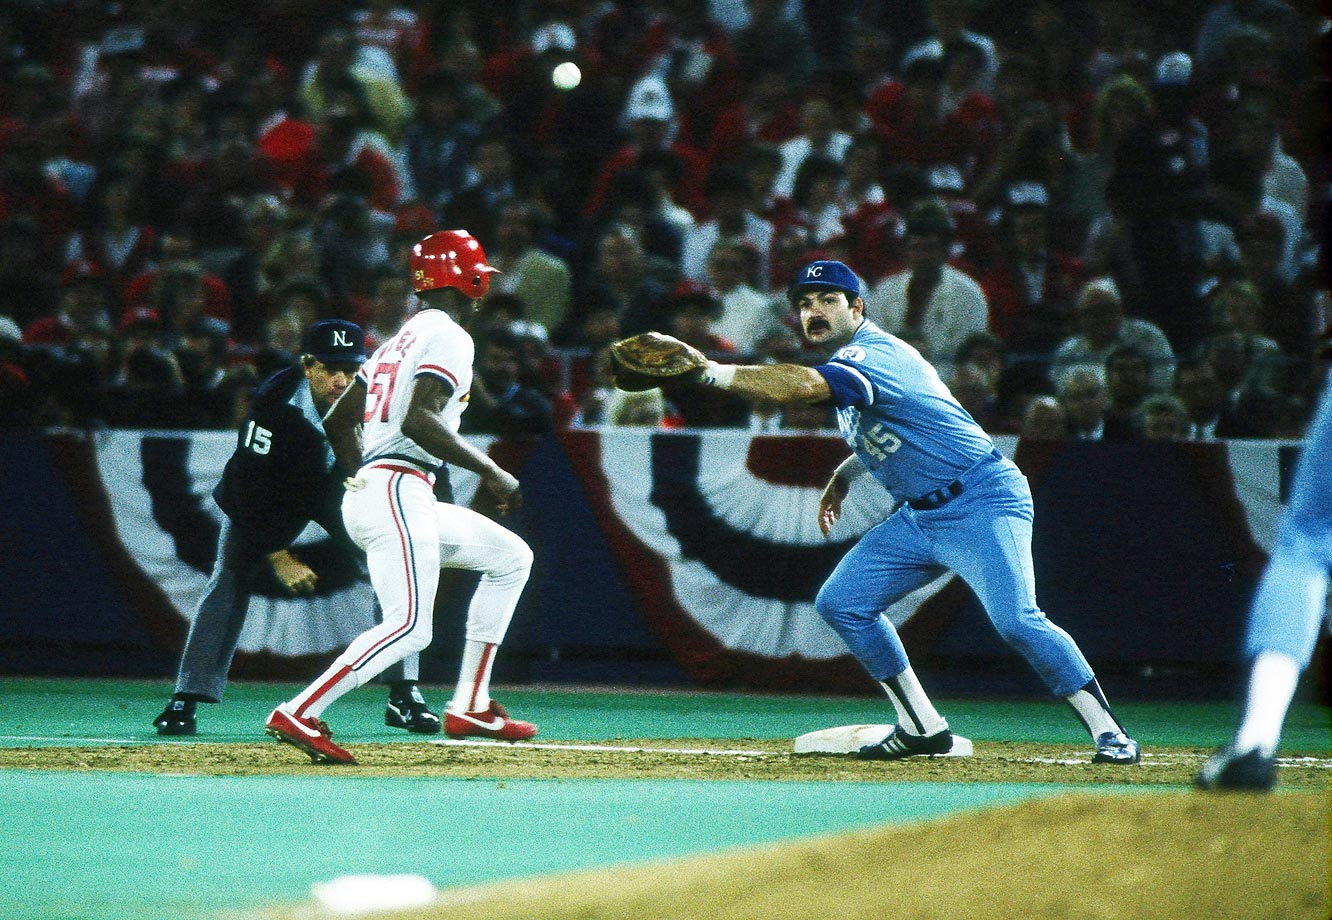 Steve Balboni of the Royals catches a pickoff throw during Game 3.